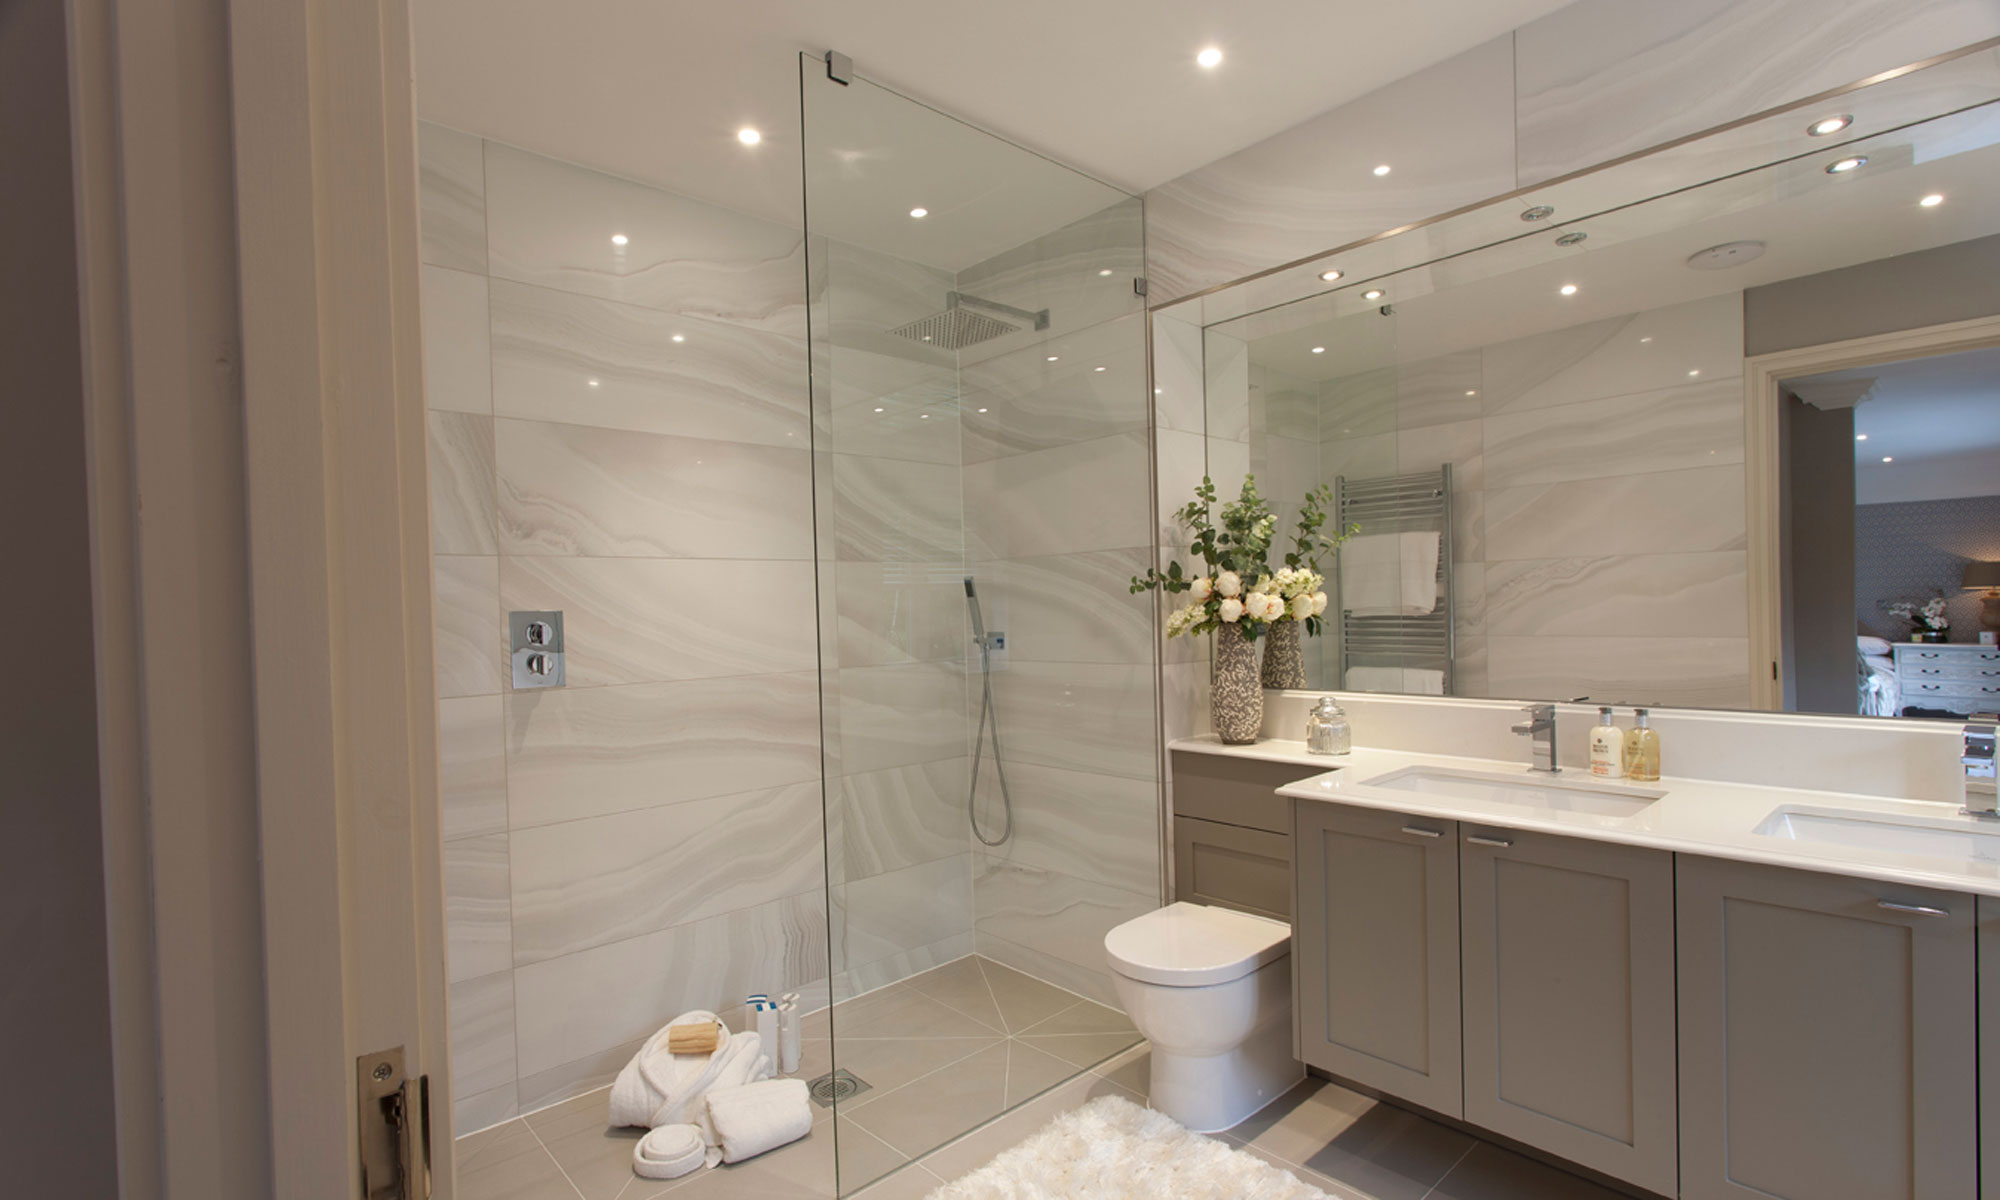 bespoke-shower-enclosures-carousel-2